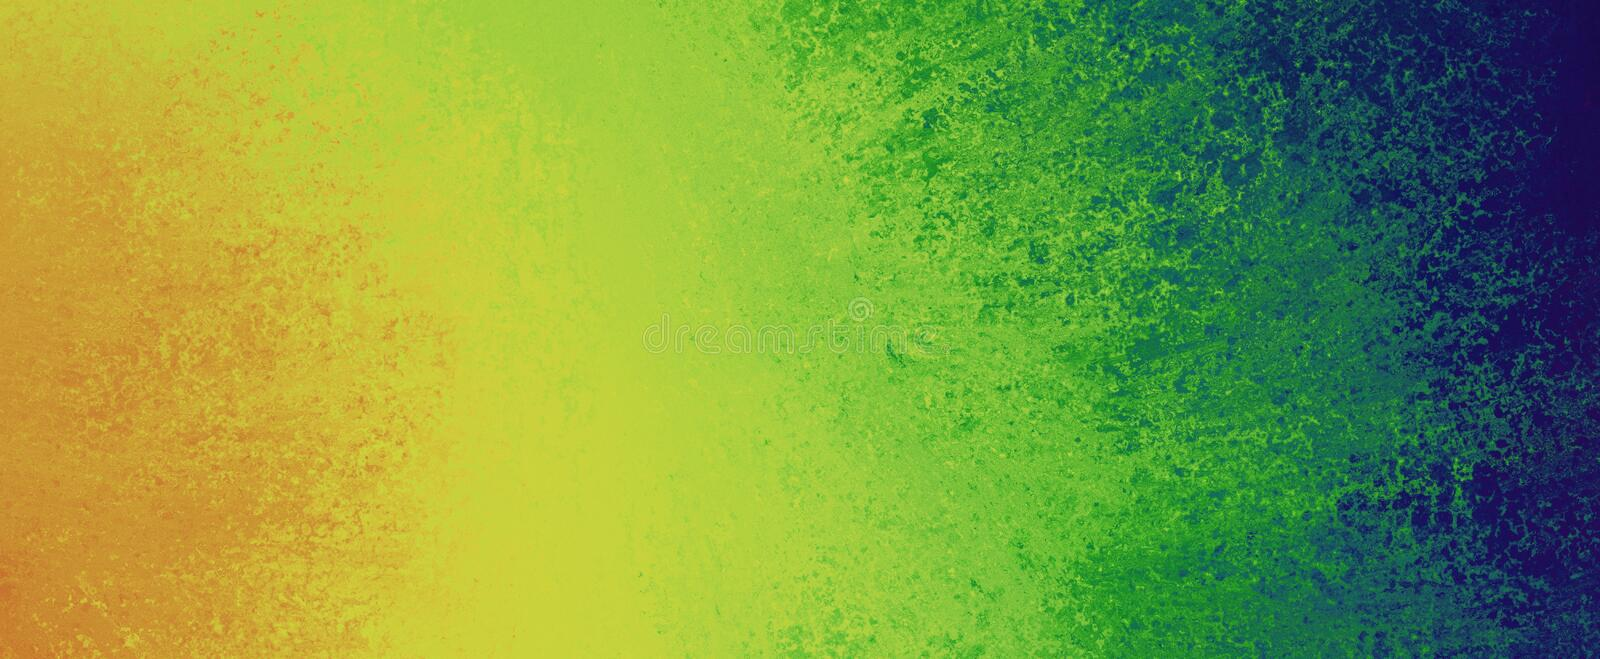 Background design with orange yellow green and blue sponged paint texture in graphic art layout, creative fun and bright color abs royalty free stock images